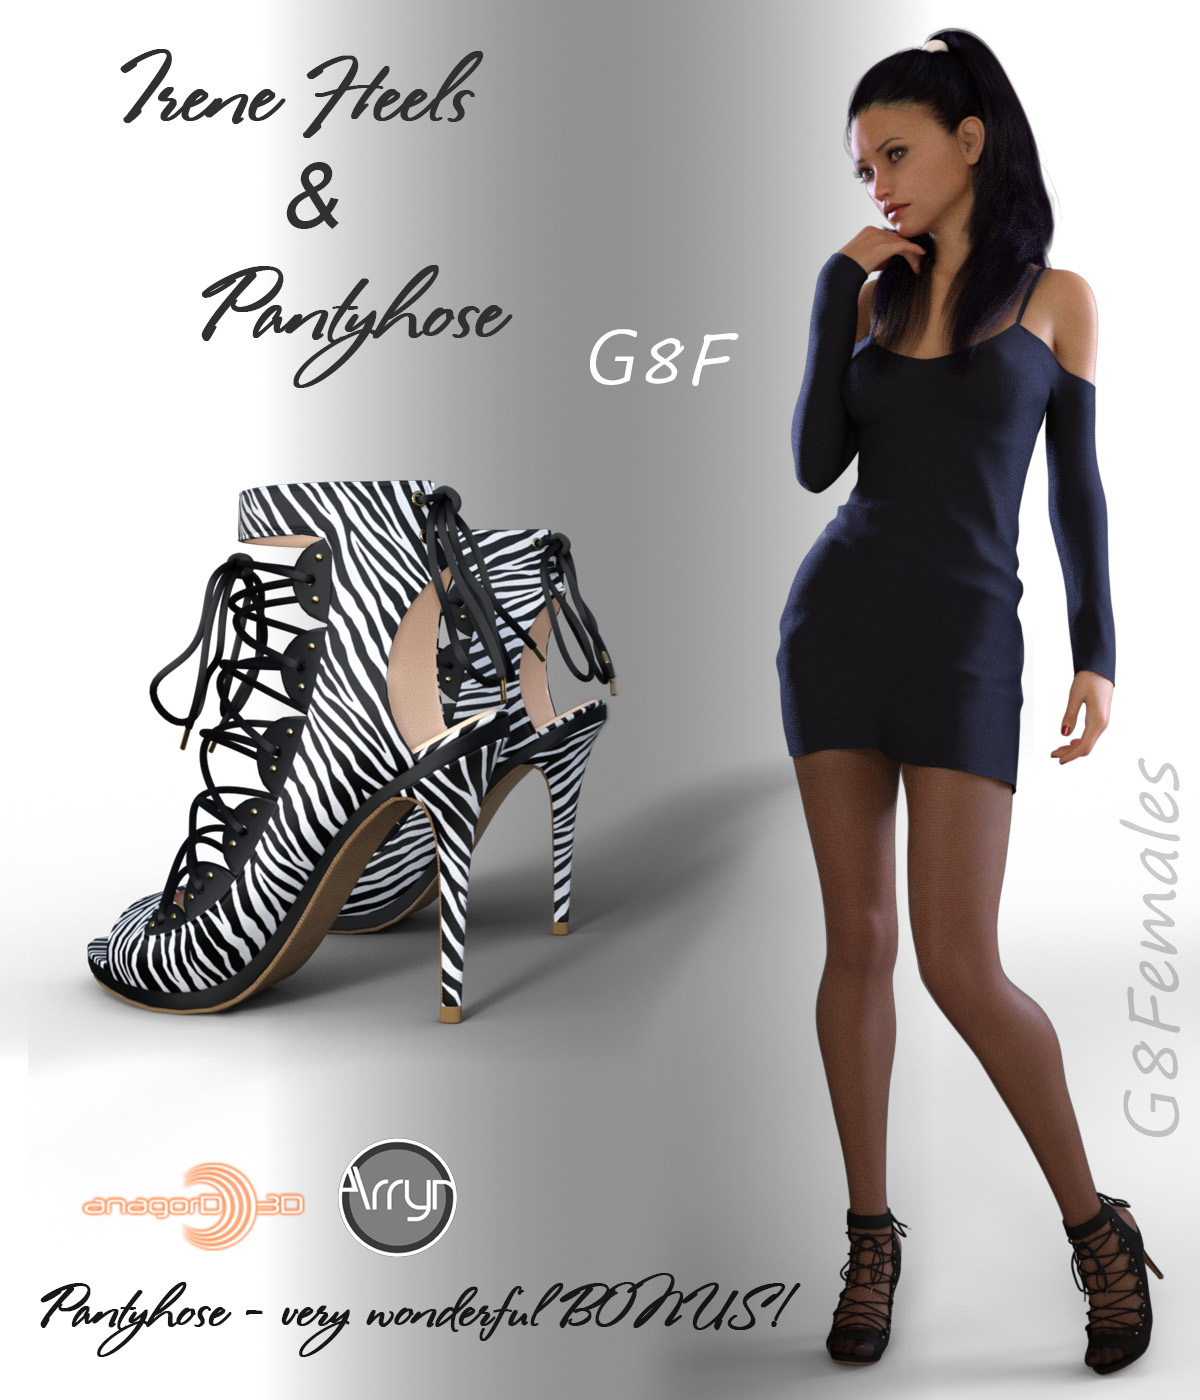 Irene Heels and Pantyhose G8F by Arryn